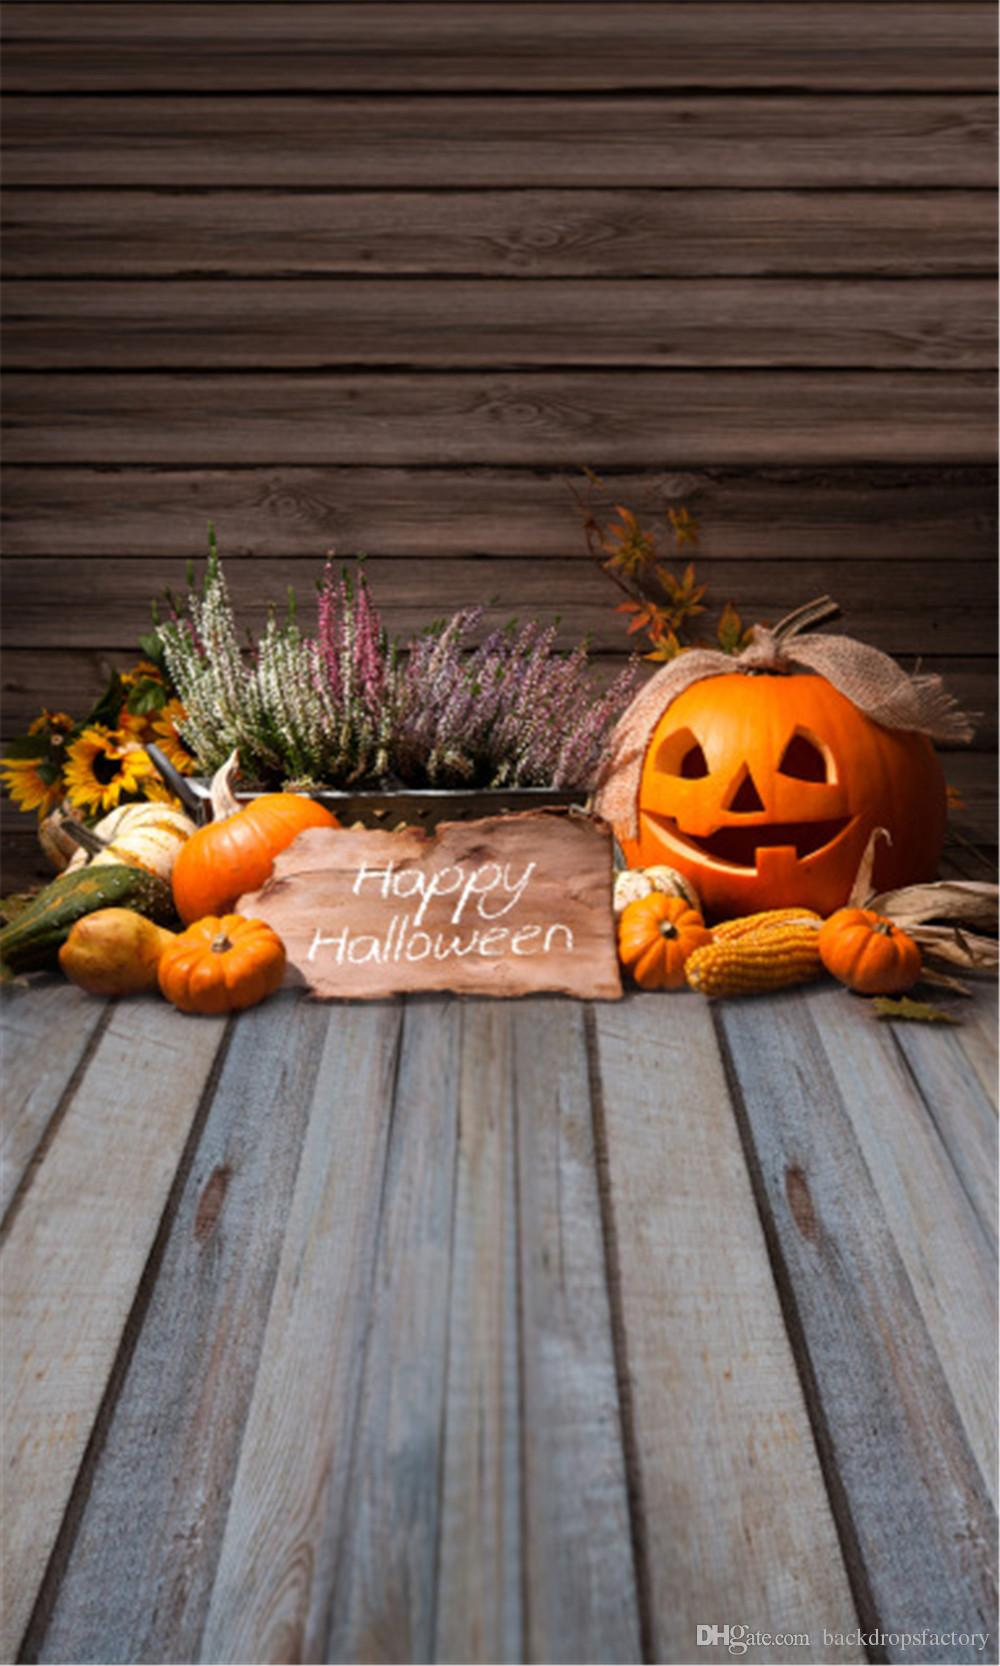 2018 Happy Halloween Backdrop Plank Wood Flooring Pumpkin